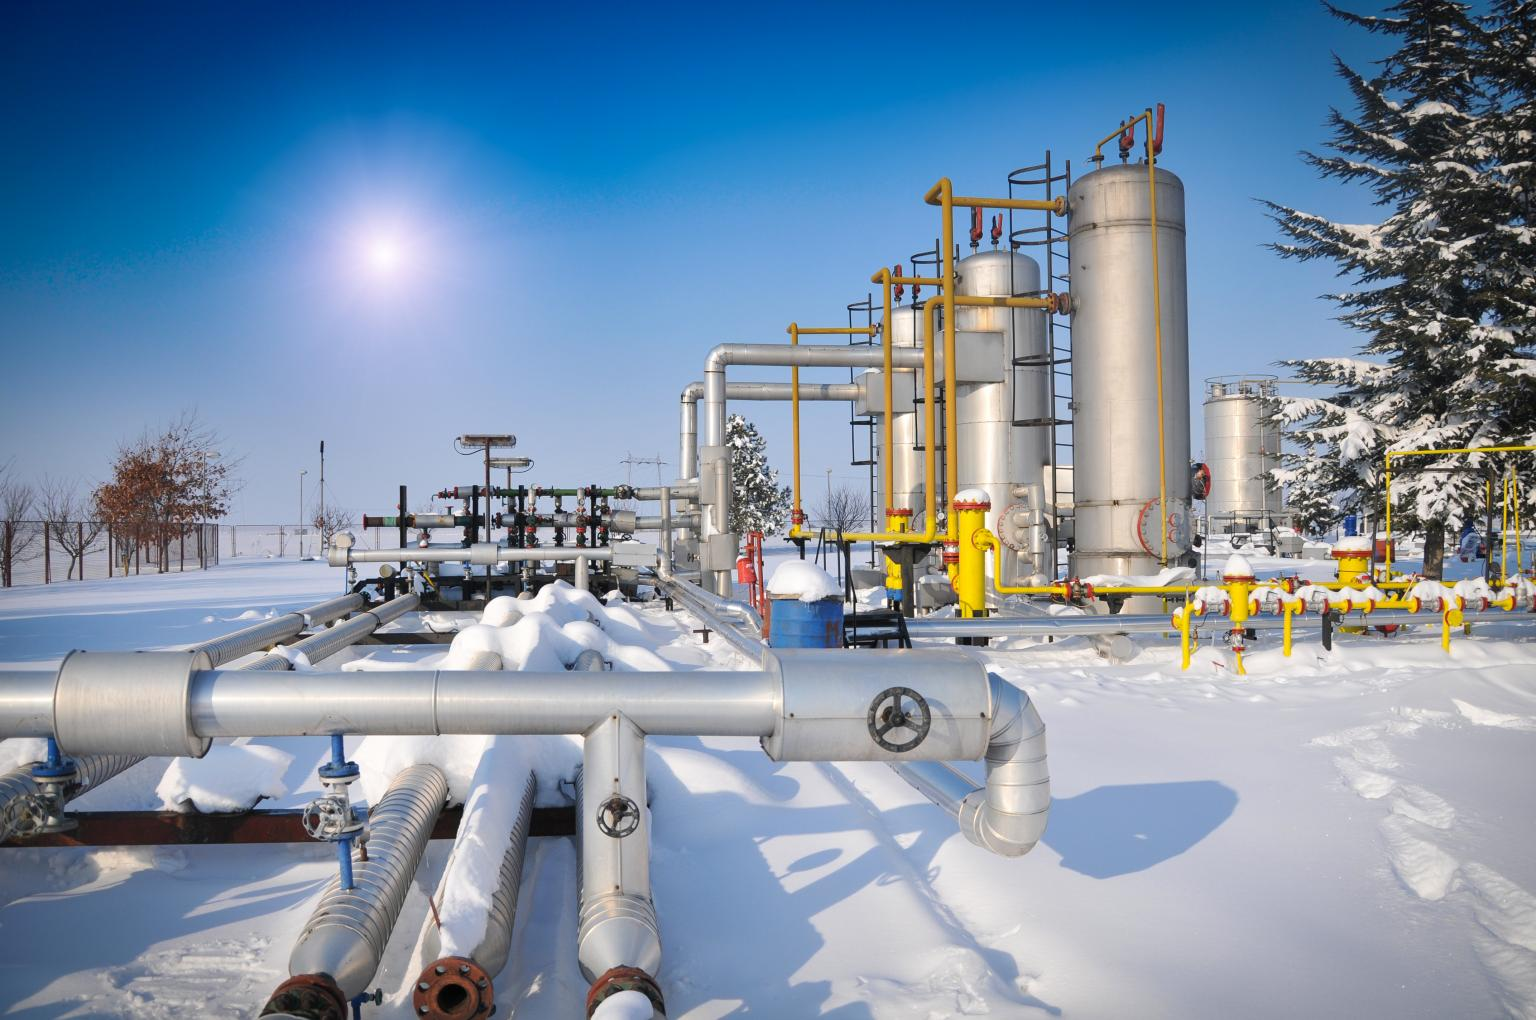 Gazprom operates and maintains a total length of 27,000 km of pipeline strings, along with 220 compressor shops and 1,168 gas pumping units